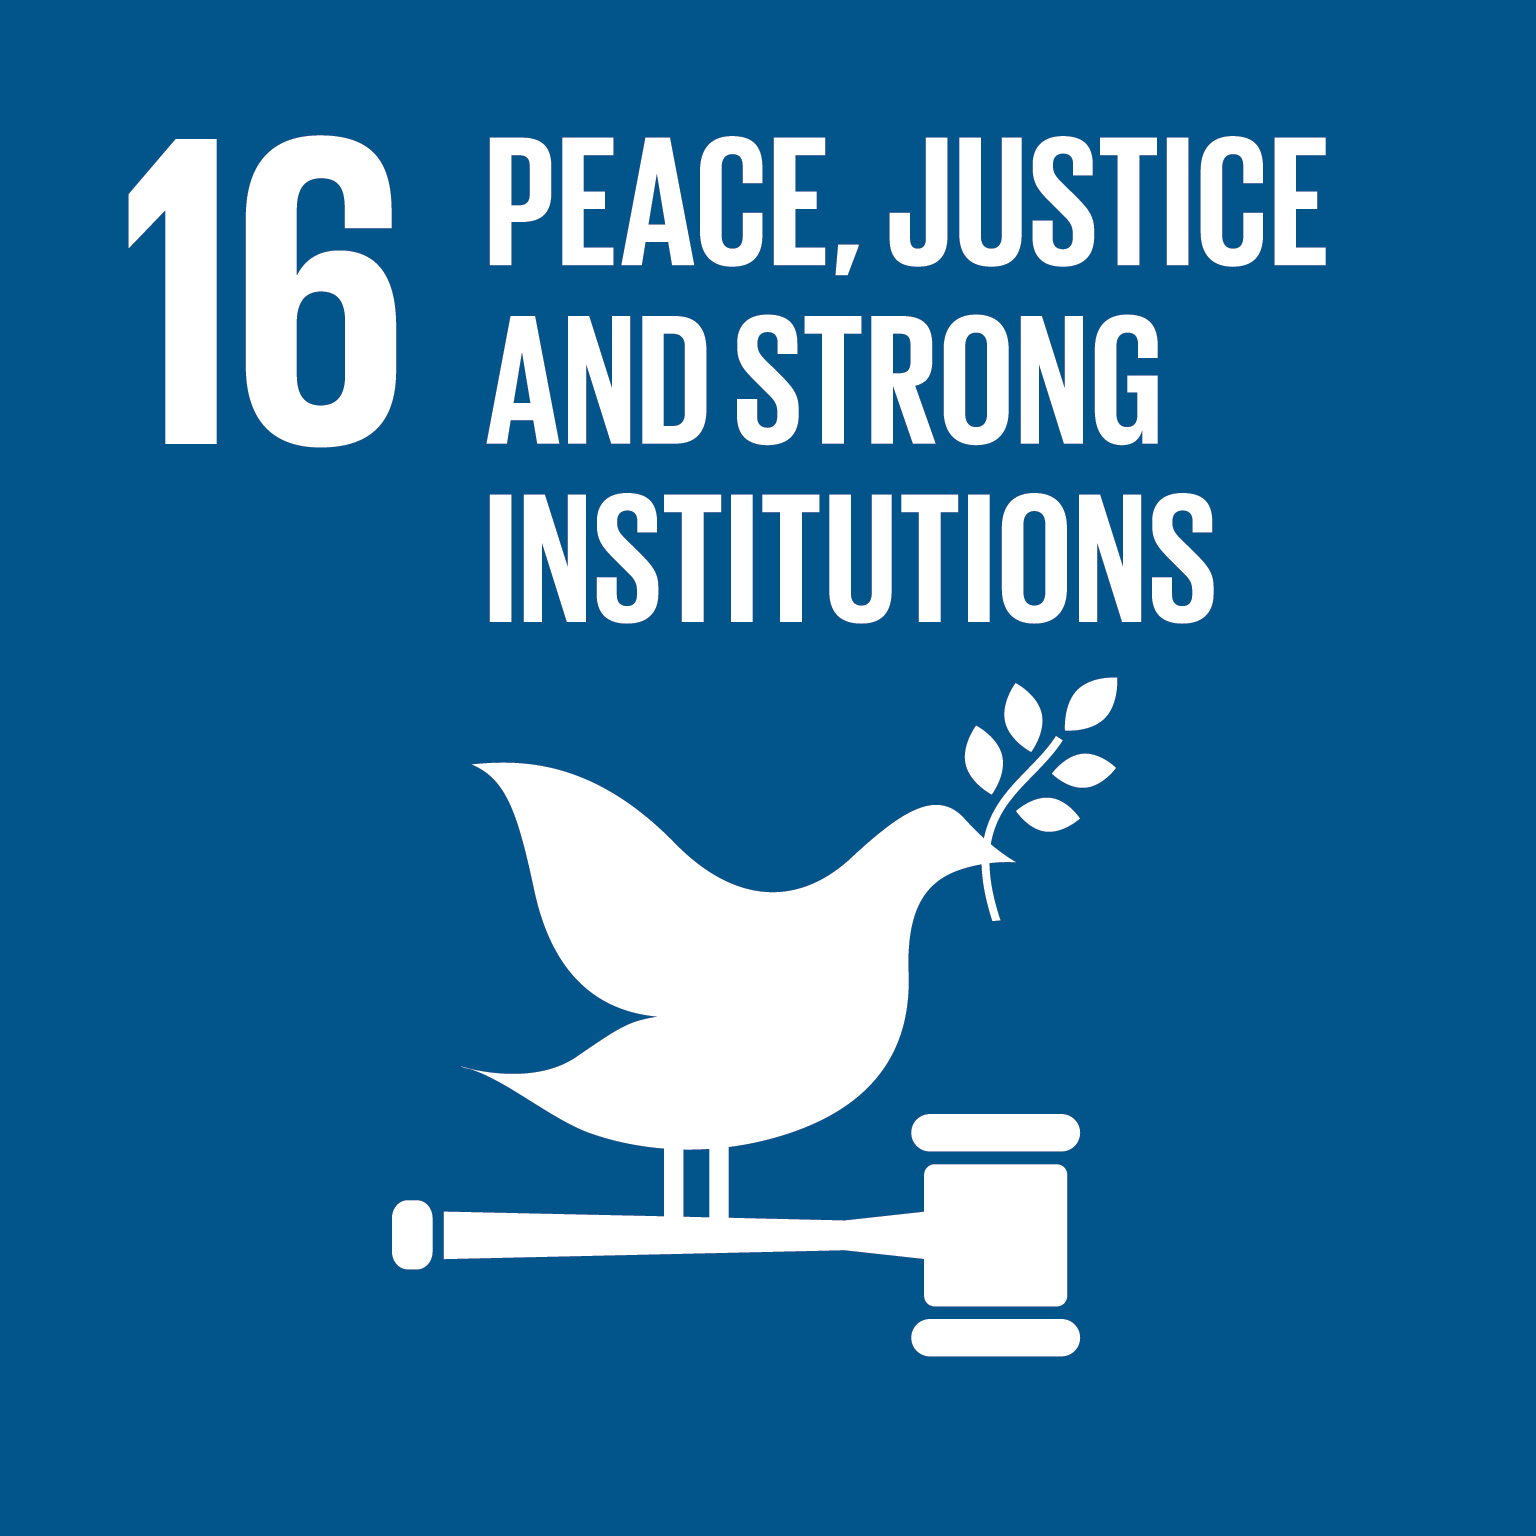 SDG Goal #16 Peace, Justice, and Strong Institutions